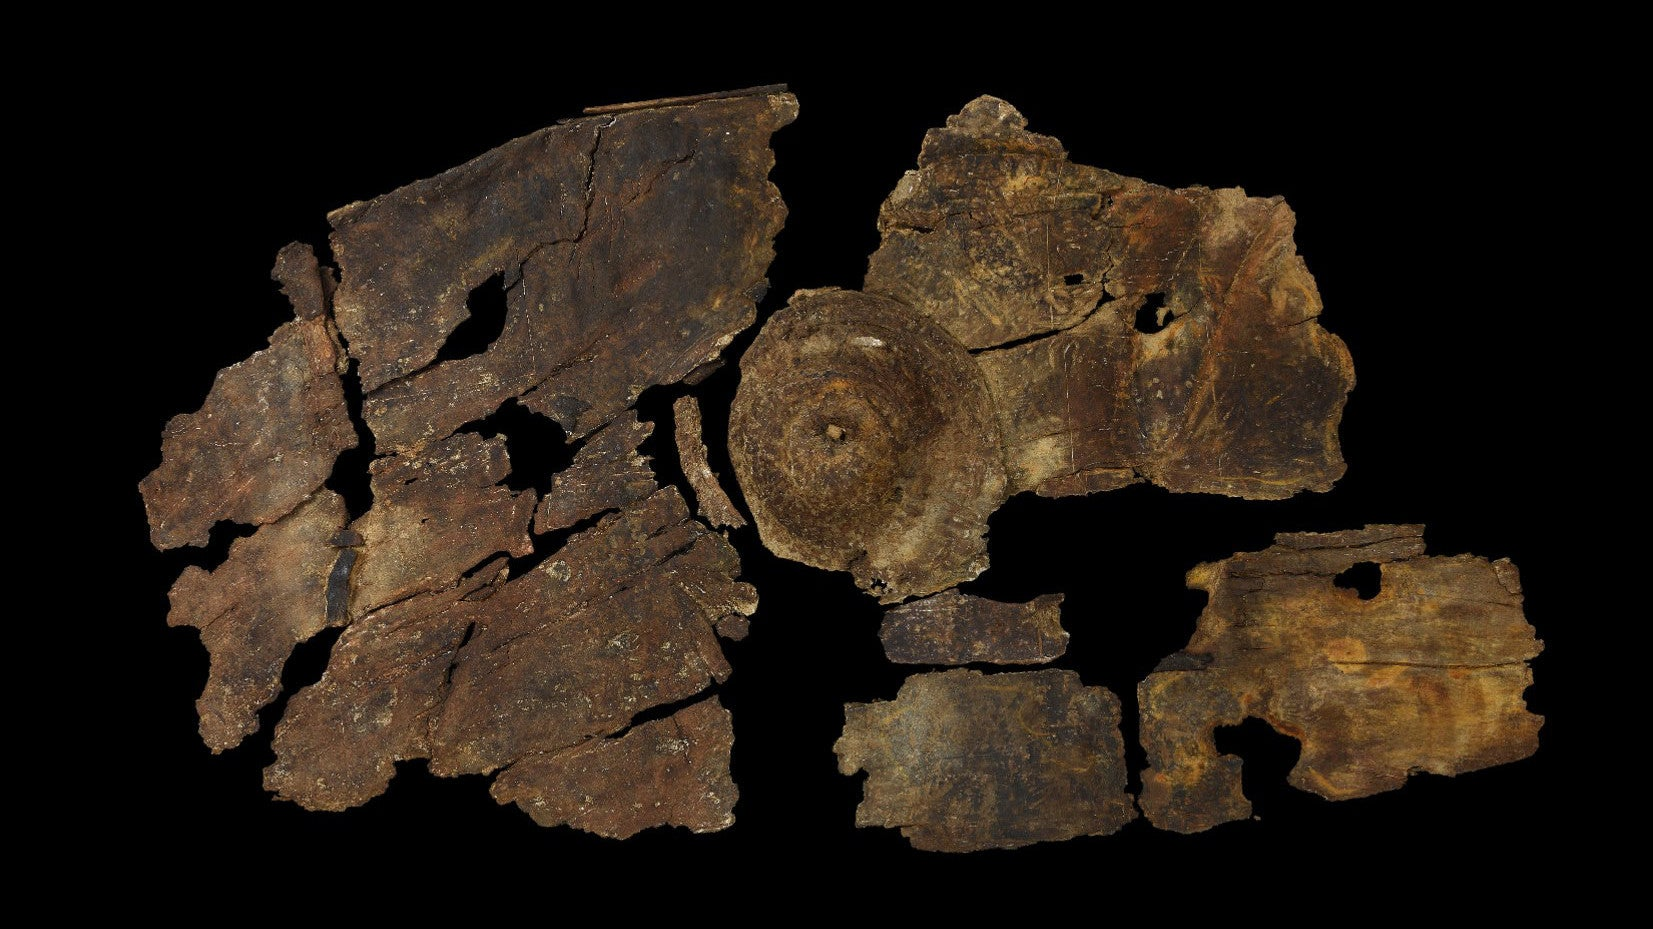 2300-Year-Old Bark Shield Showcases A Previously Unknown Iron Age Technology